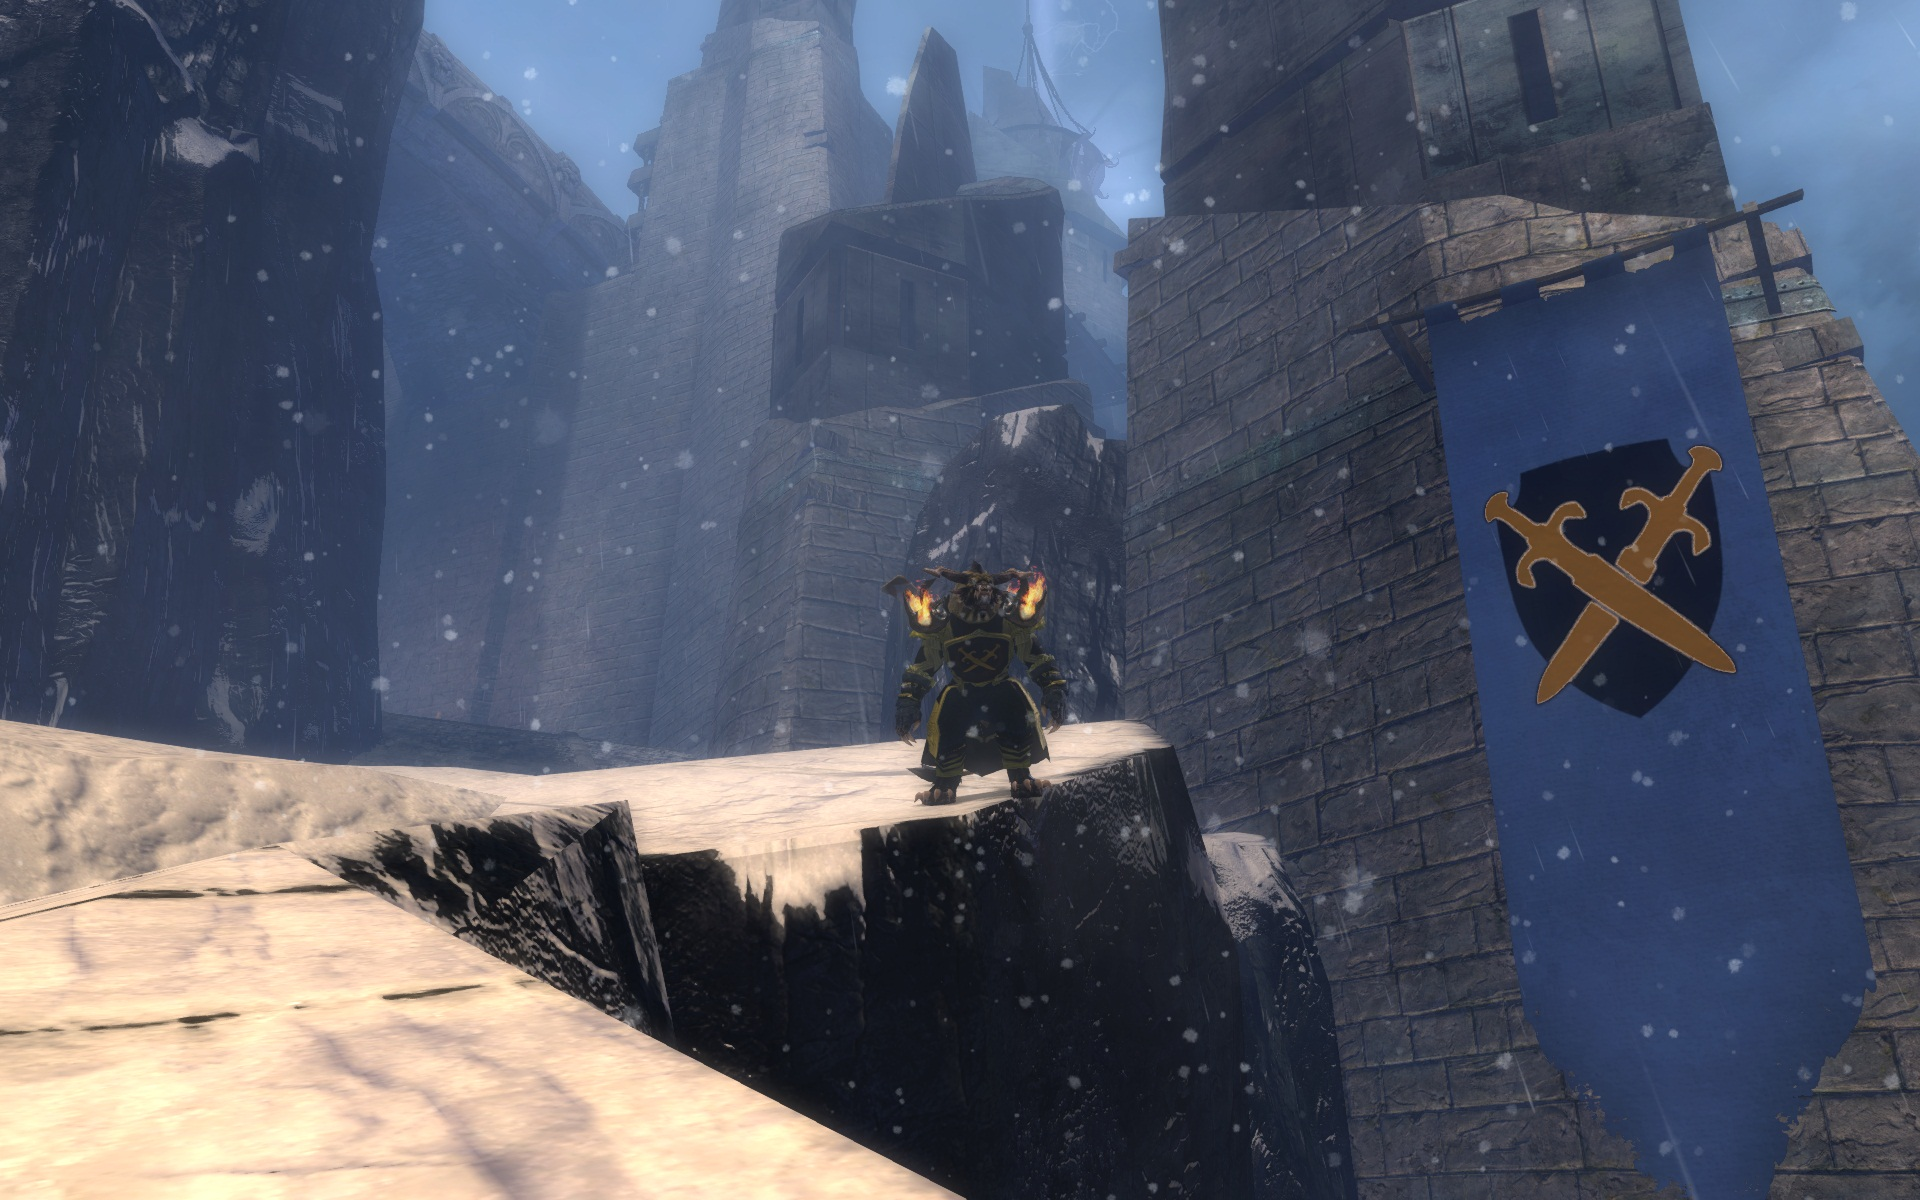 GROW BK sur Guildwars 2 - 1920 x 1200 - claim garnison